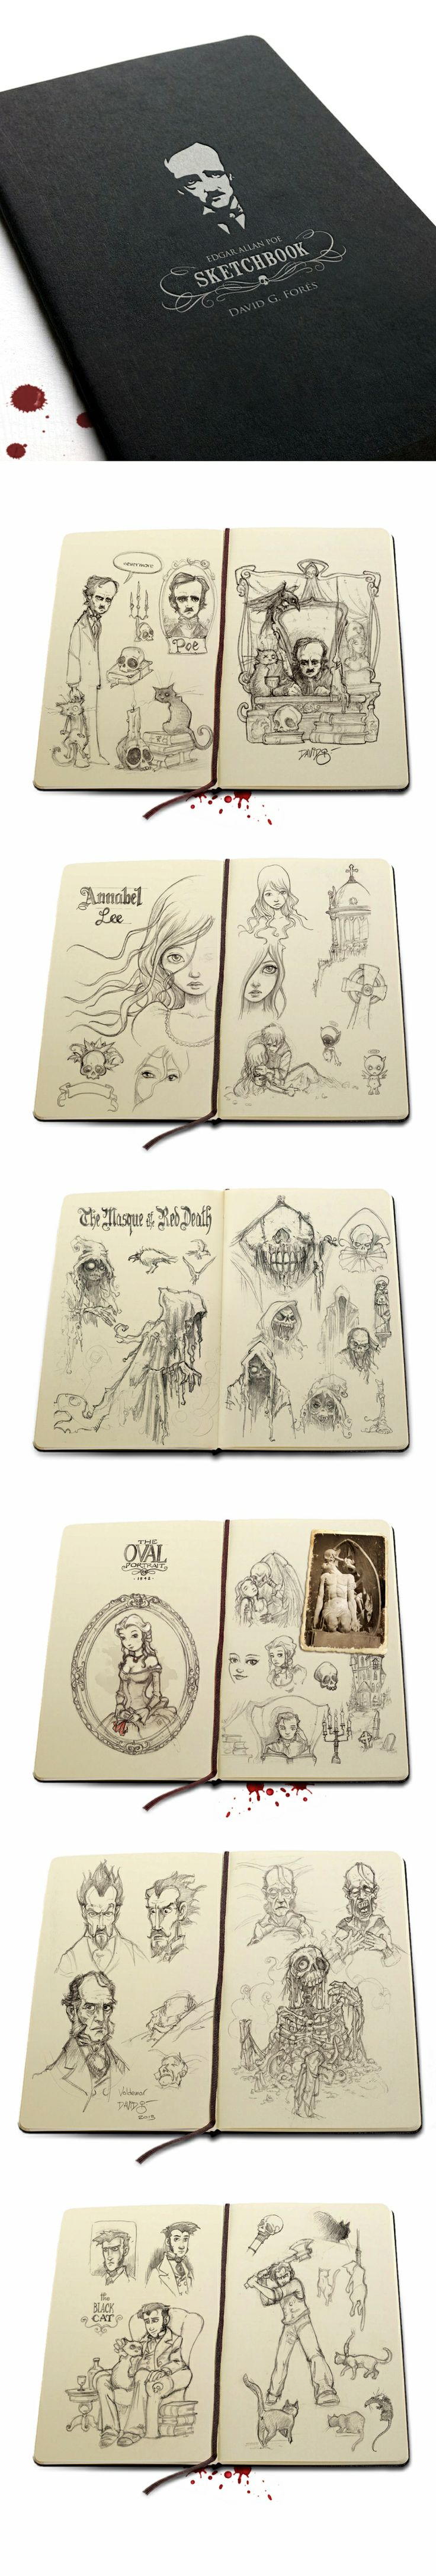 "Edgar Allan Poe's sketchbook byDavid G. Forés, that you'll get in all the rewards from 'Insane edition + collector's kit' on Kickstater: E.A. Poe's ""Ravings of love & death"" https://www.kickstarter.com/projects/davidgfores/edgar-allan-poe-illustrated-ravings-of-love-and-de"